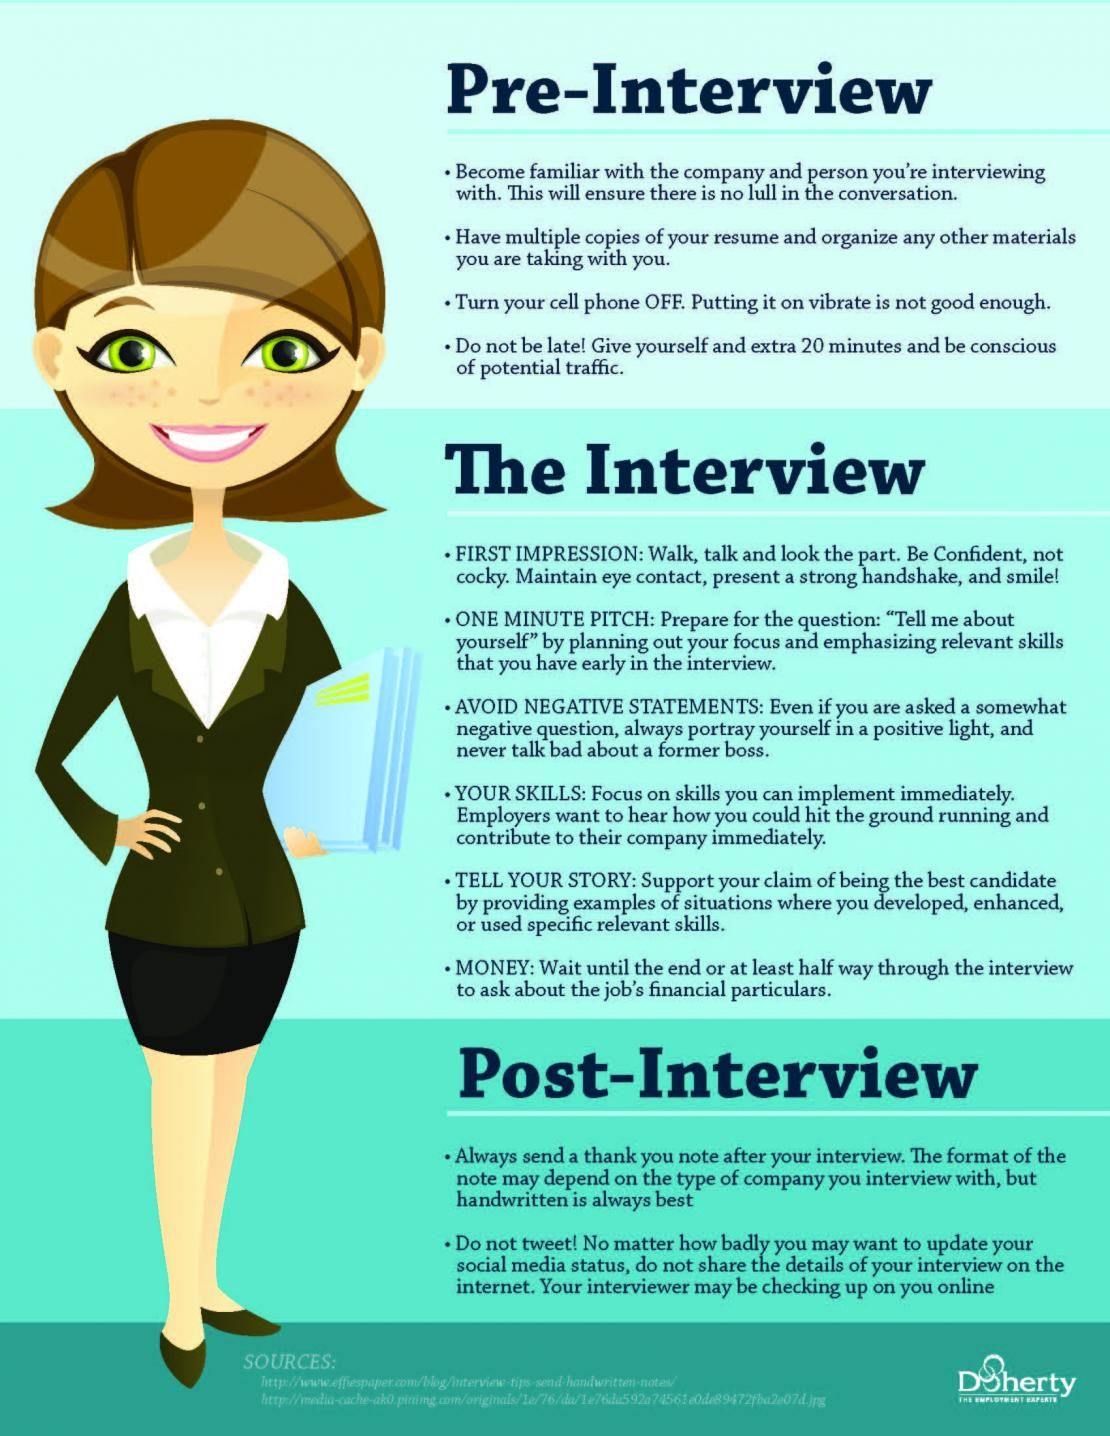 The 3 stages of a successful job interview: Before, during, and ...